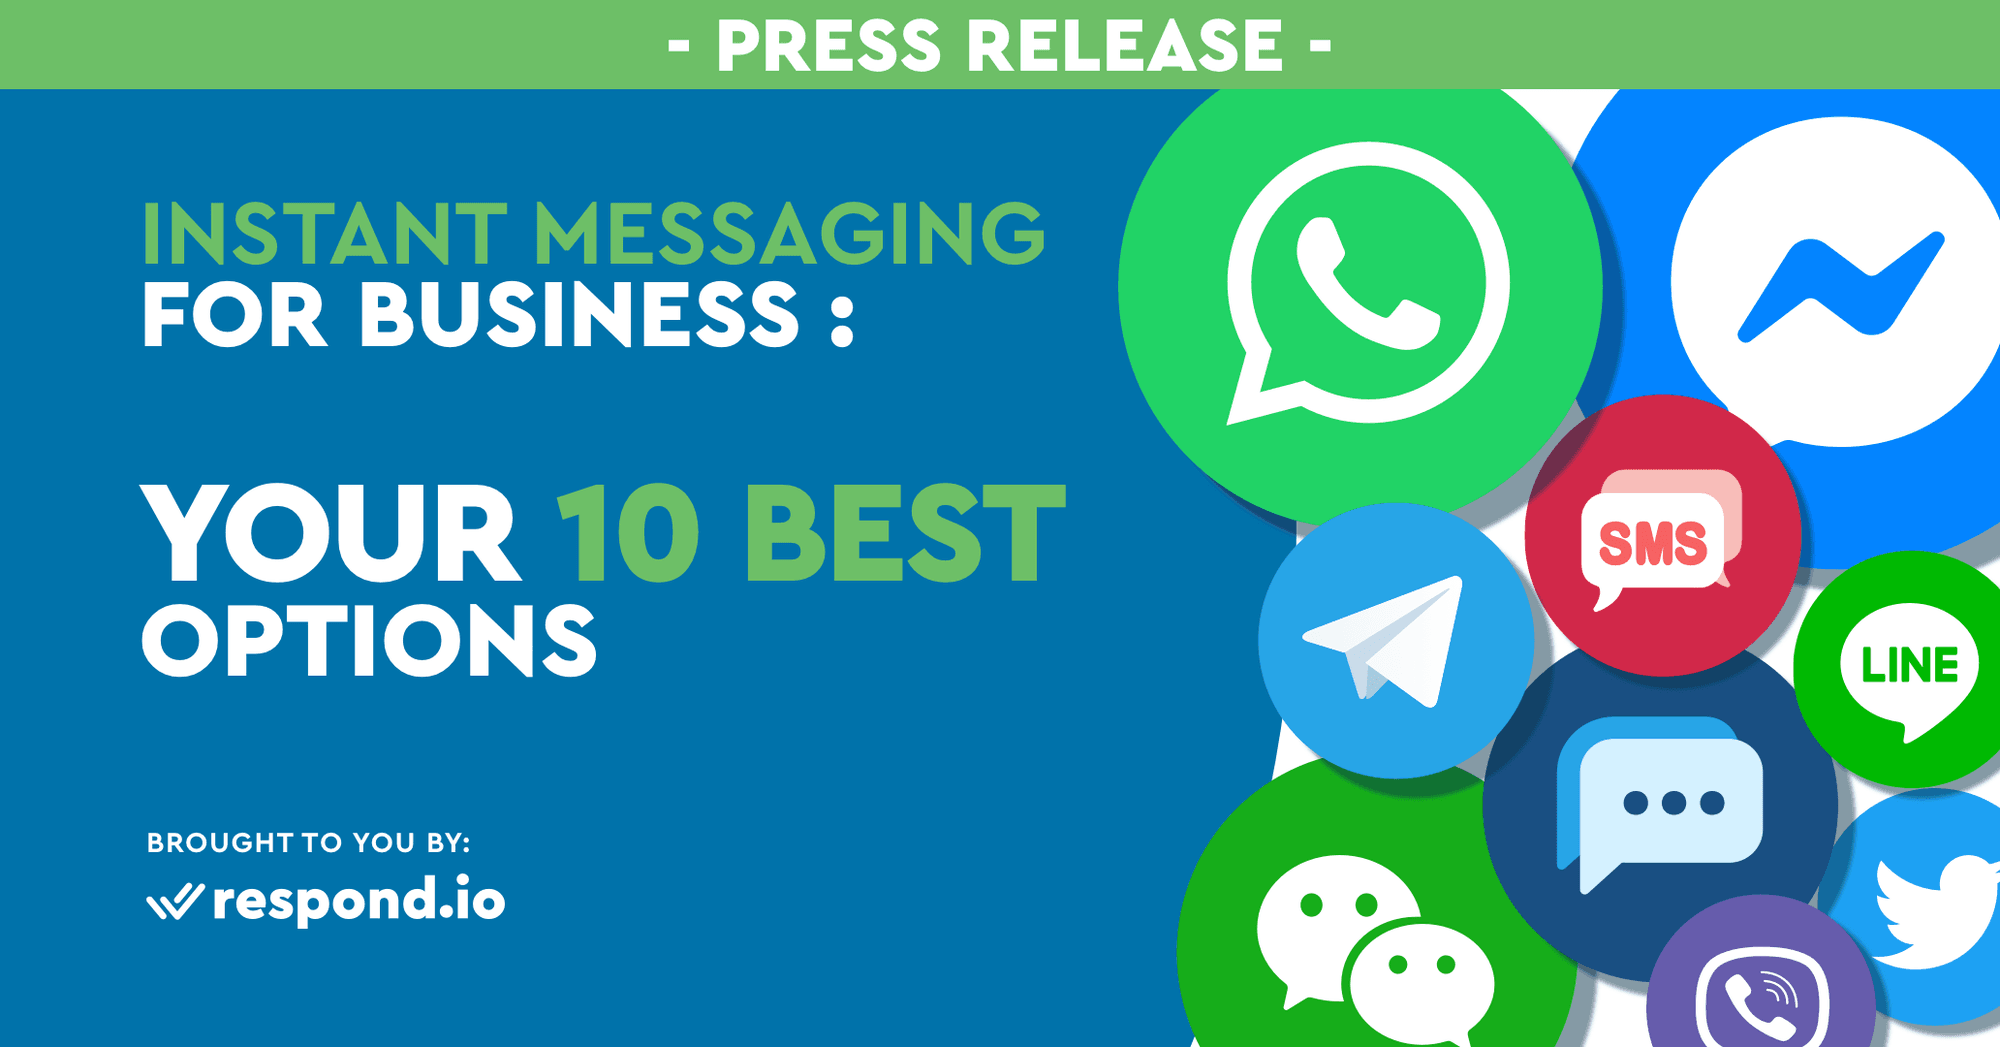 Instant Messaging for Business: Your 10 Best Options (Nov 2020)